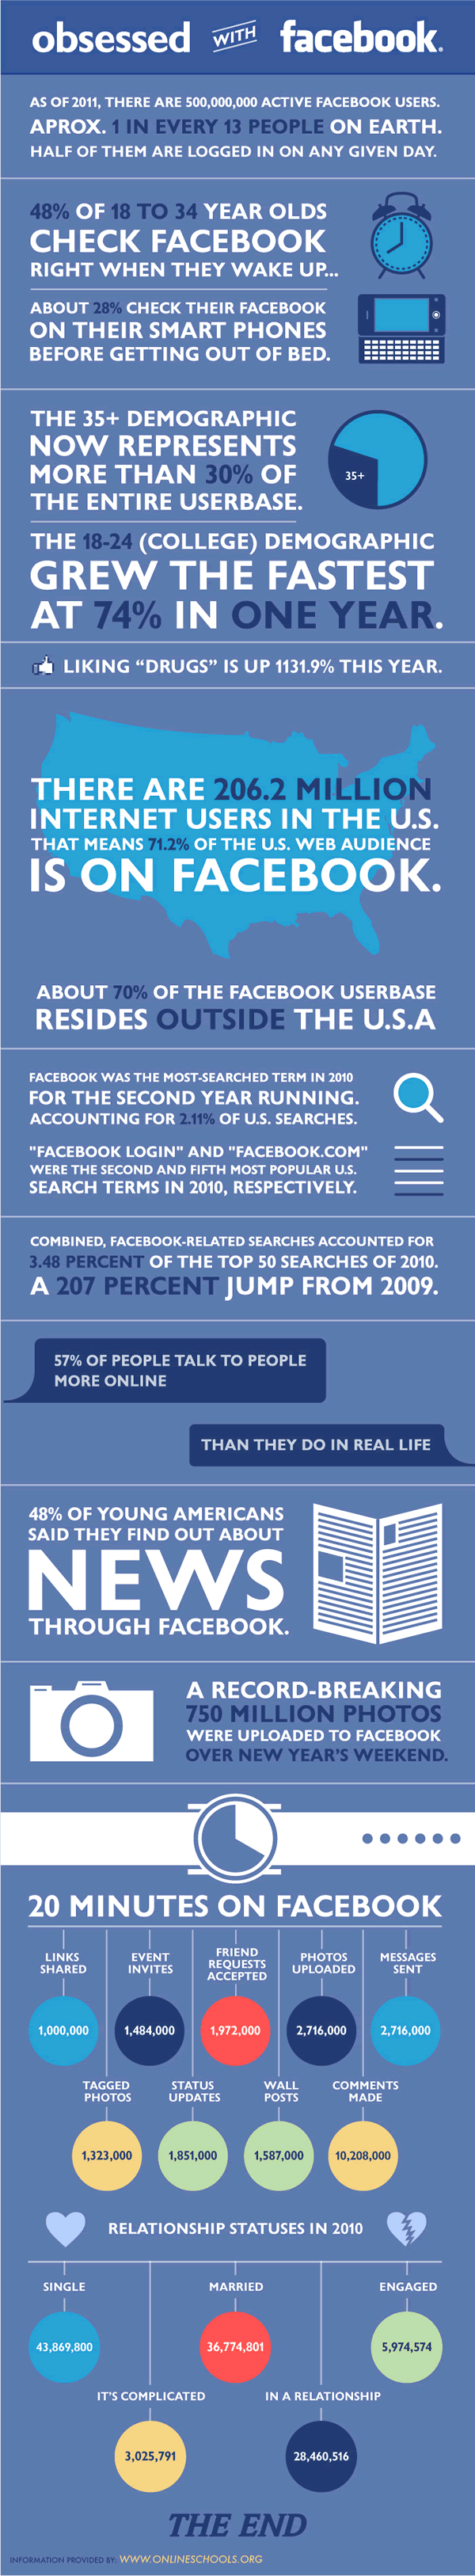 How many people are obsessed with facebook?